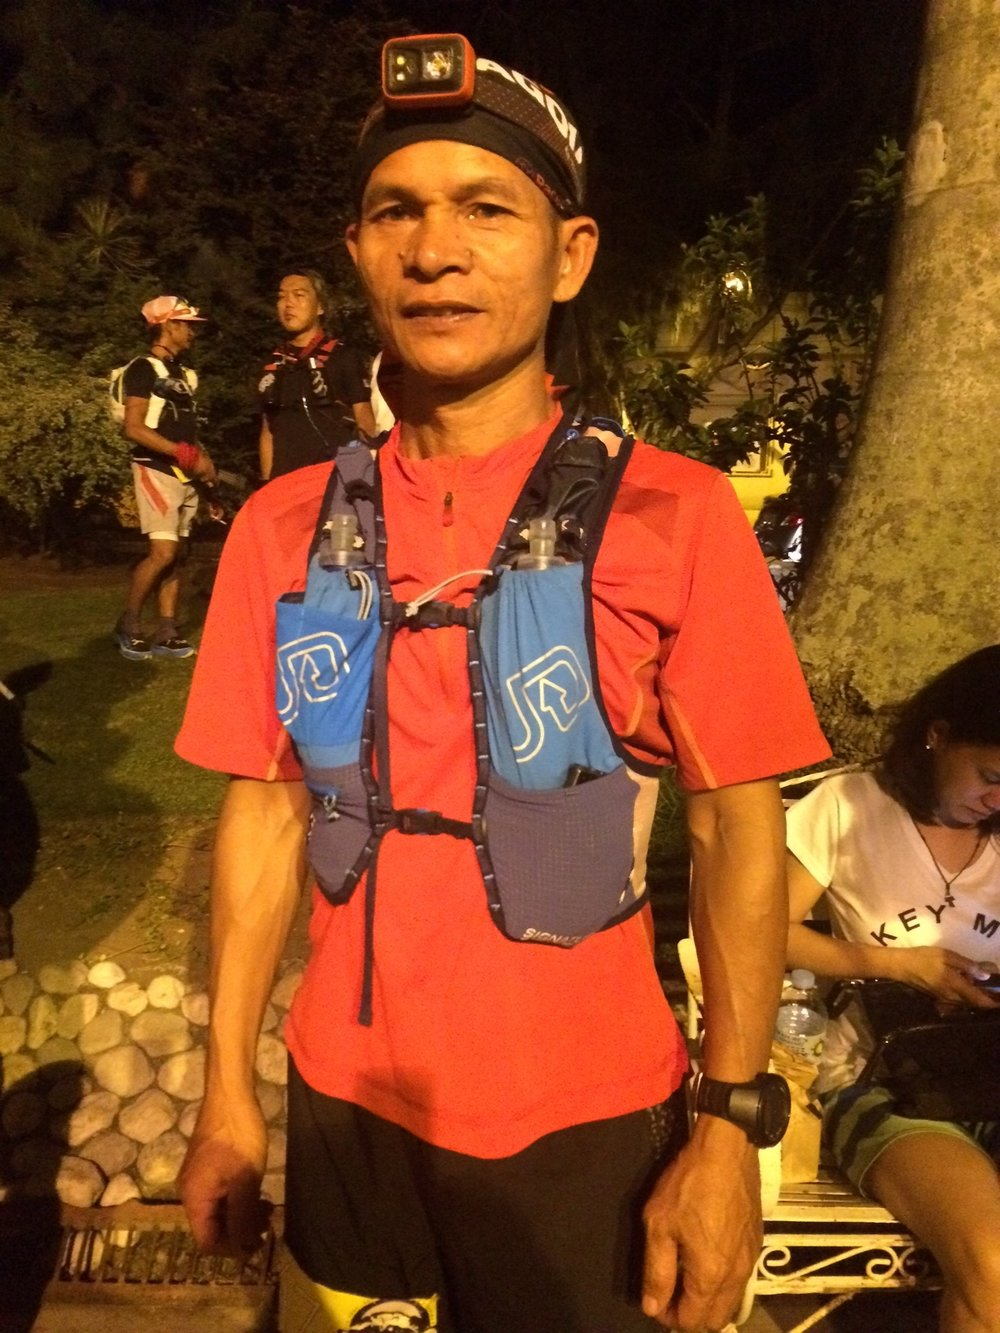 Rene Amigleo is a new Asia Trail Grandmaster